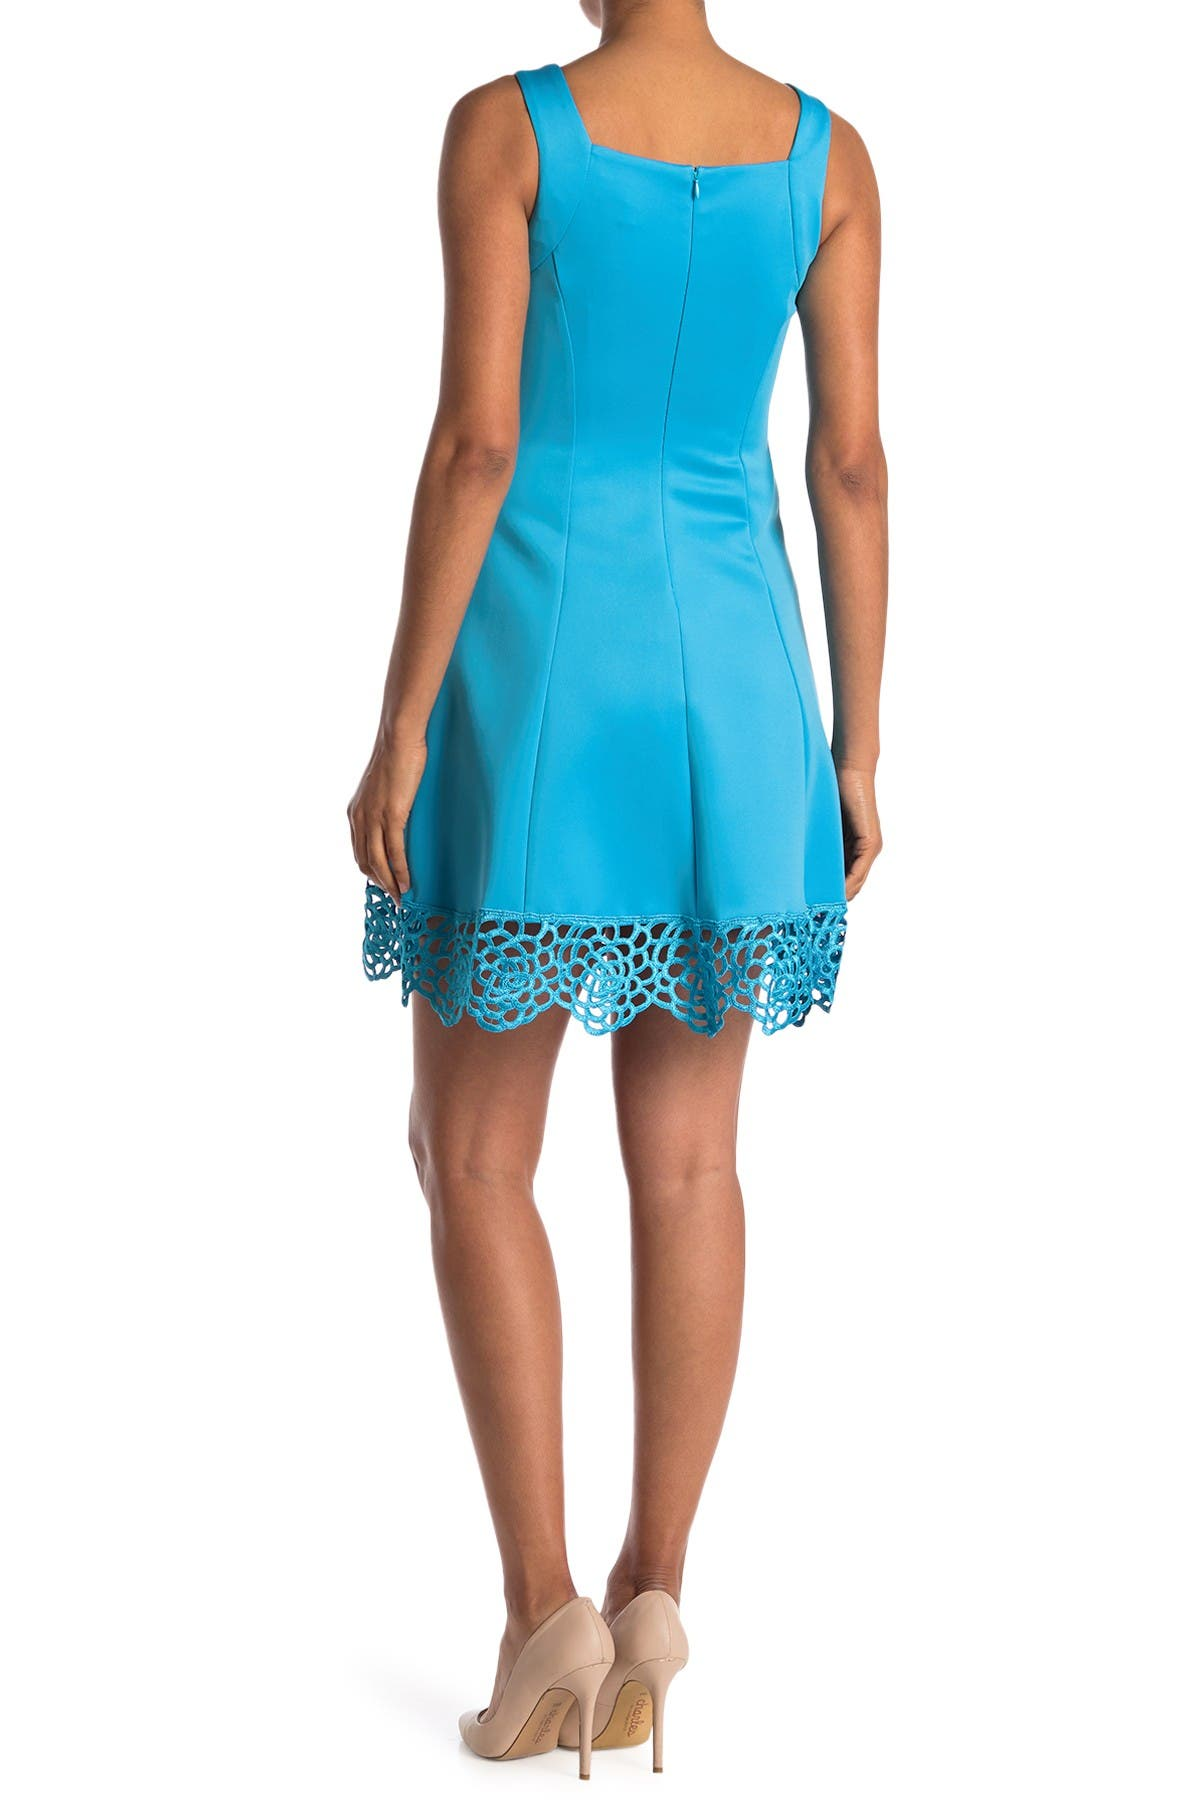 Image of Donna Ricco Sleeveless Scuba Fit and Flare Dress